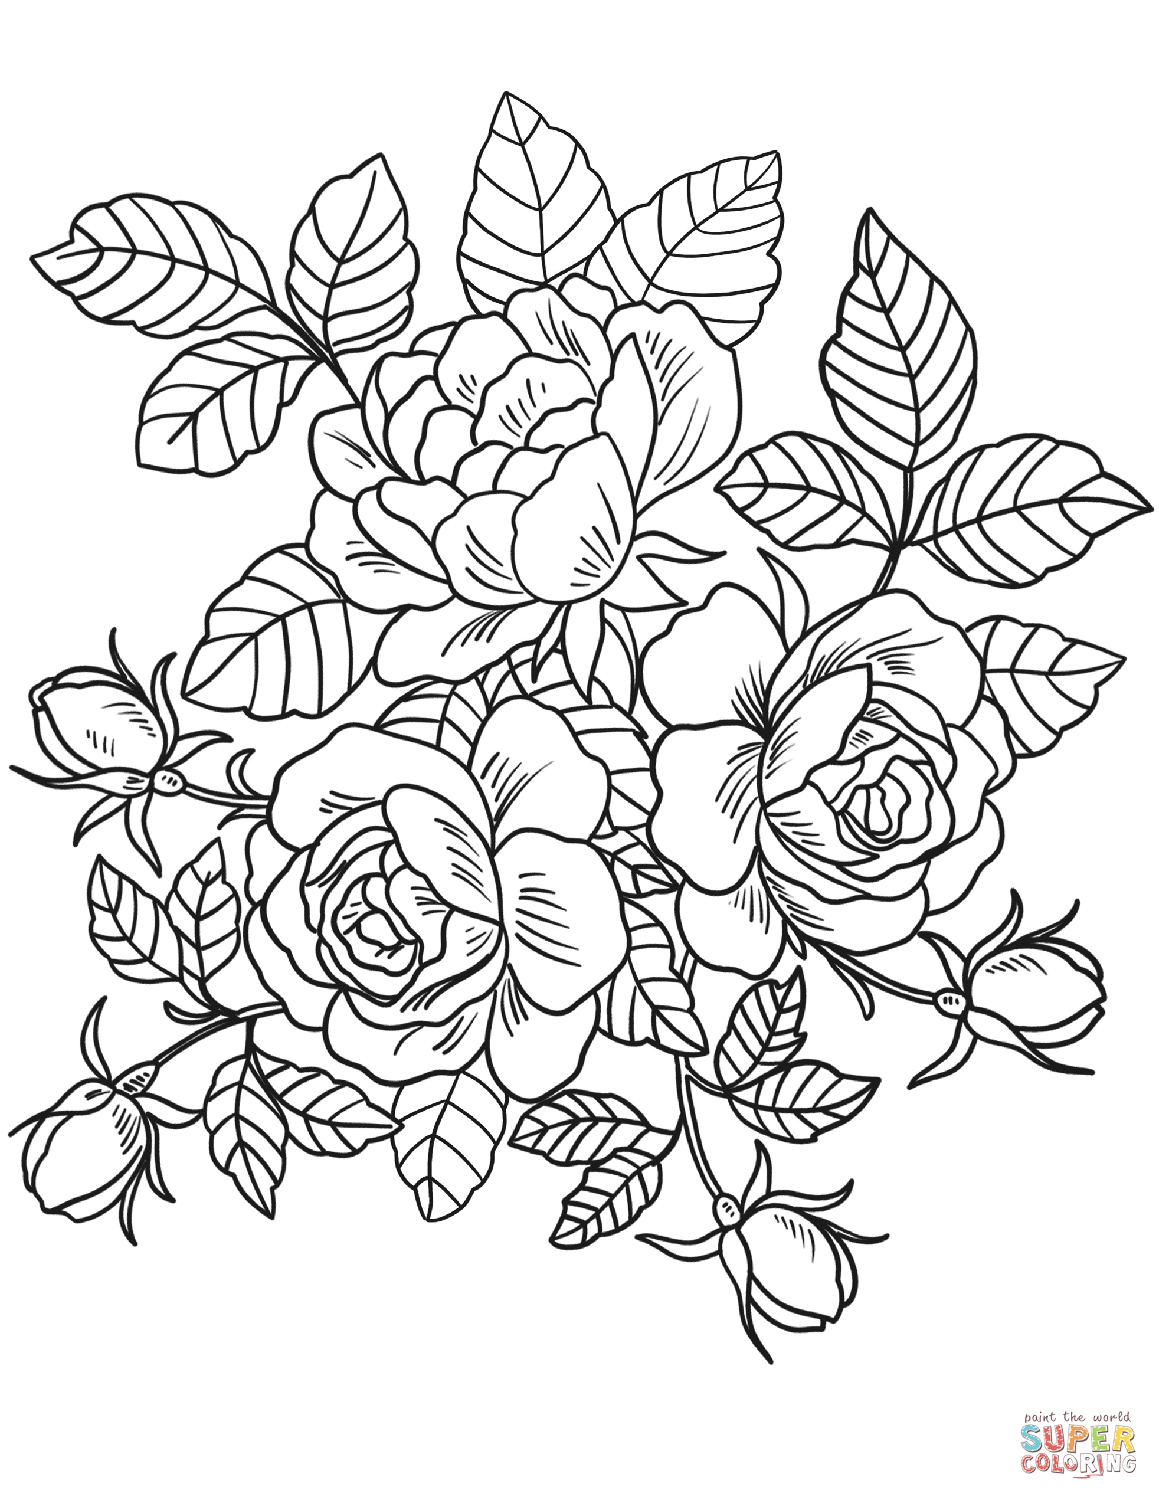 red rose rose coloring pages rose petals coloring page coloring pages rose coloring rose pages red coloring rose